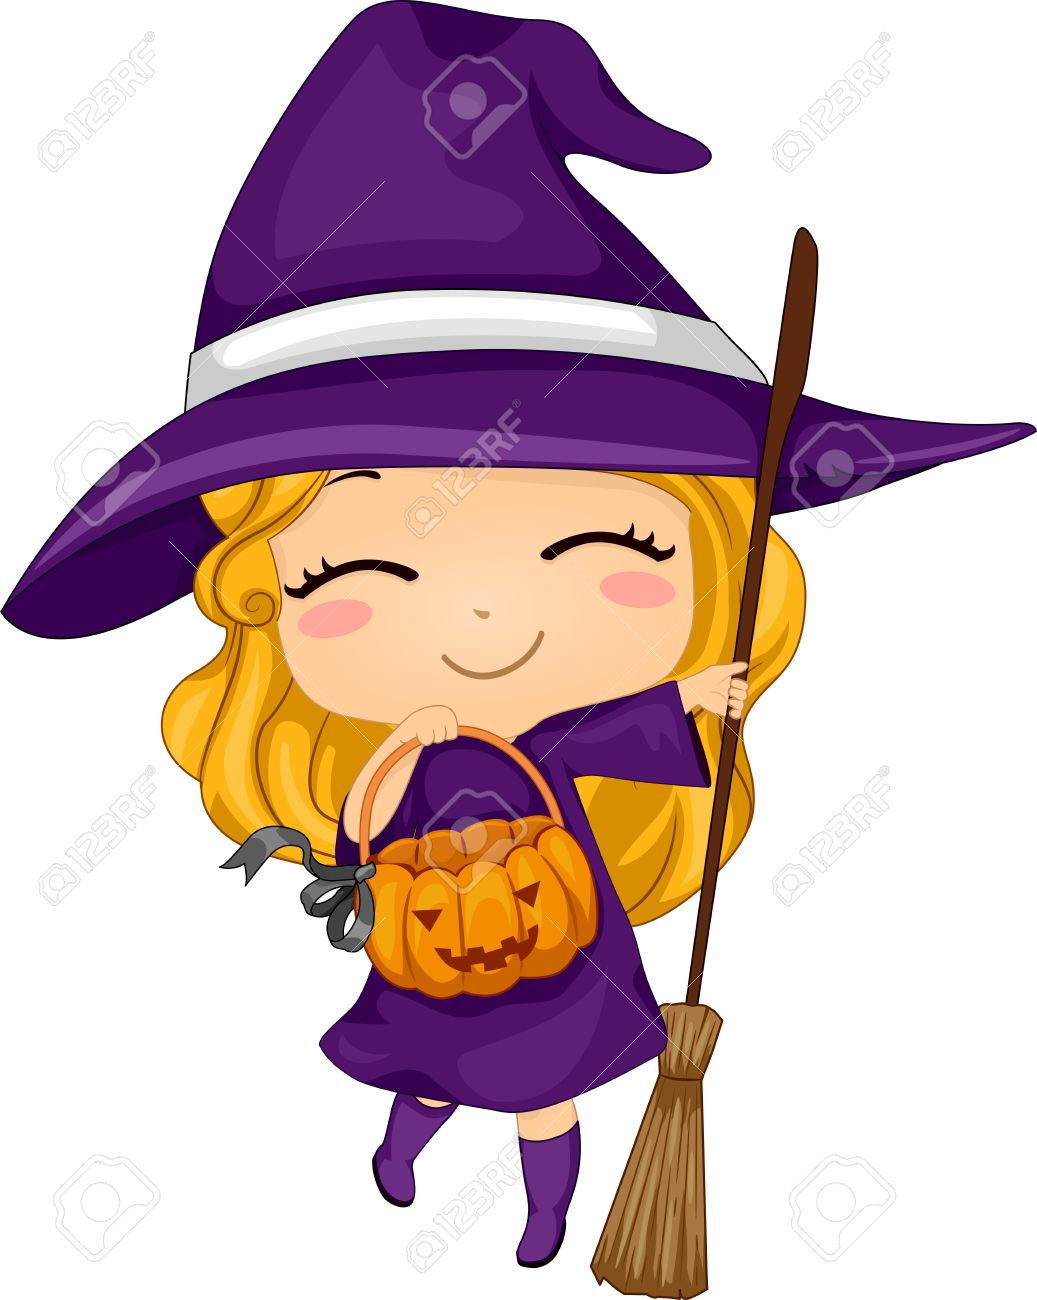 1037x1300 Witch Clipart Kid Friendly